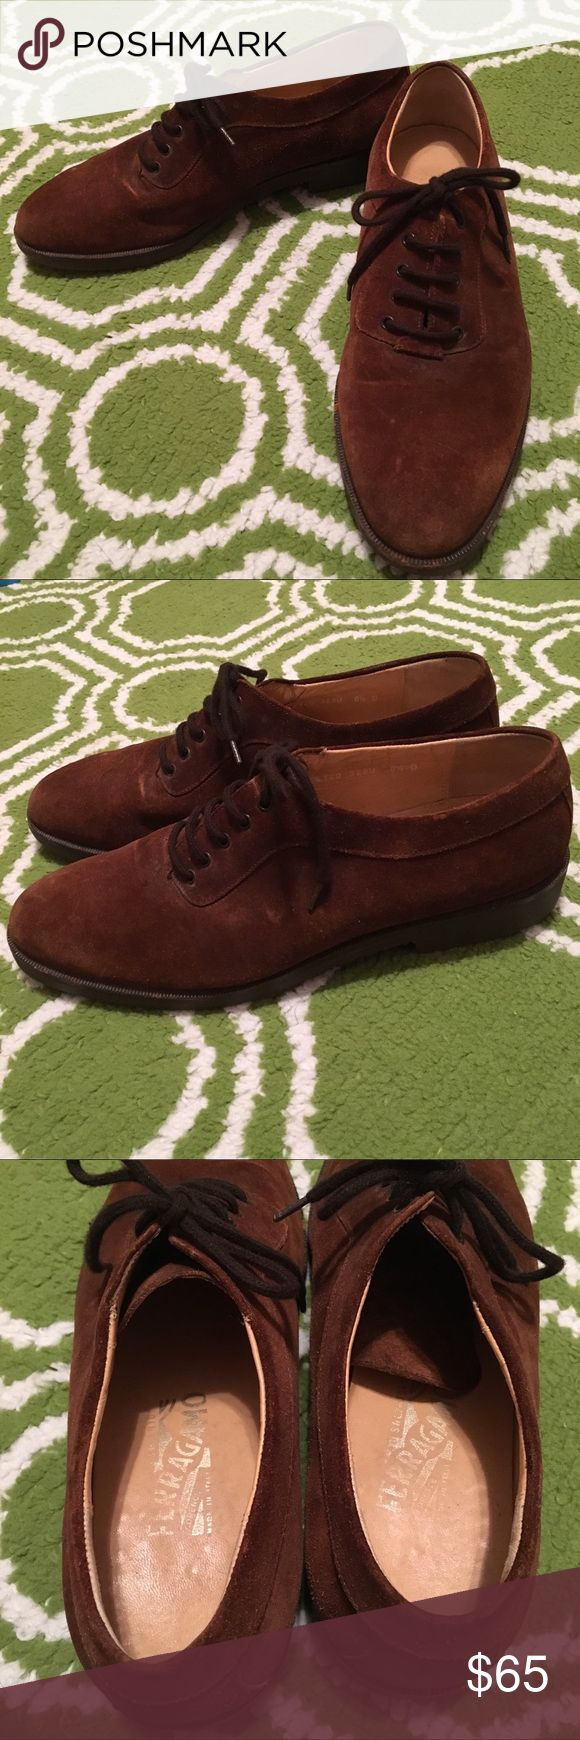 Salvatore Ferragamo 8.5D Brown Suede Oxfords Good used condition, some wear (see pictures), vibram sole. Salvatore Ferragamo Shoes Oxfords & Derbys